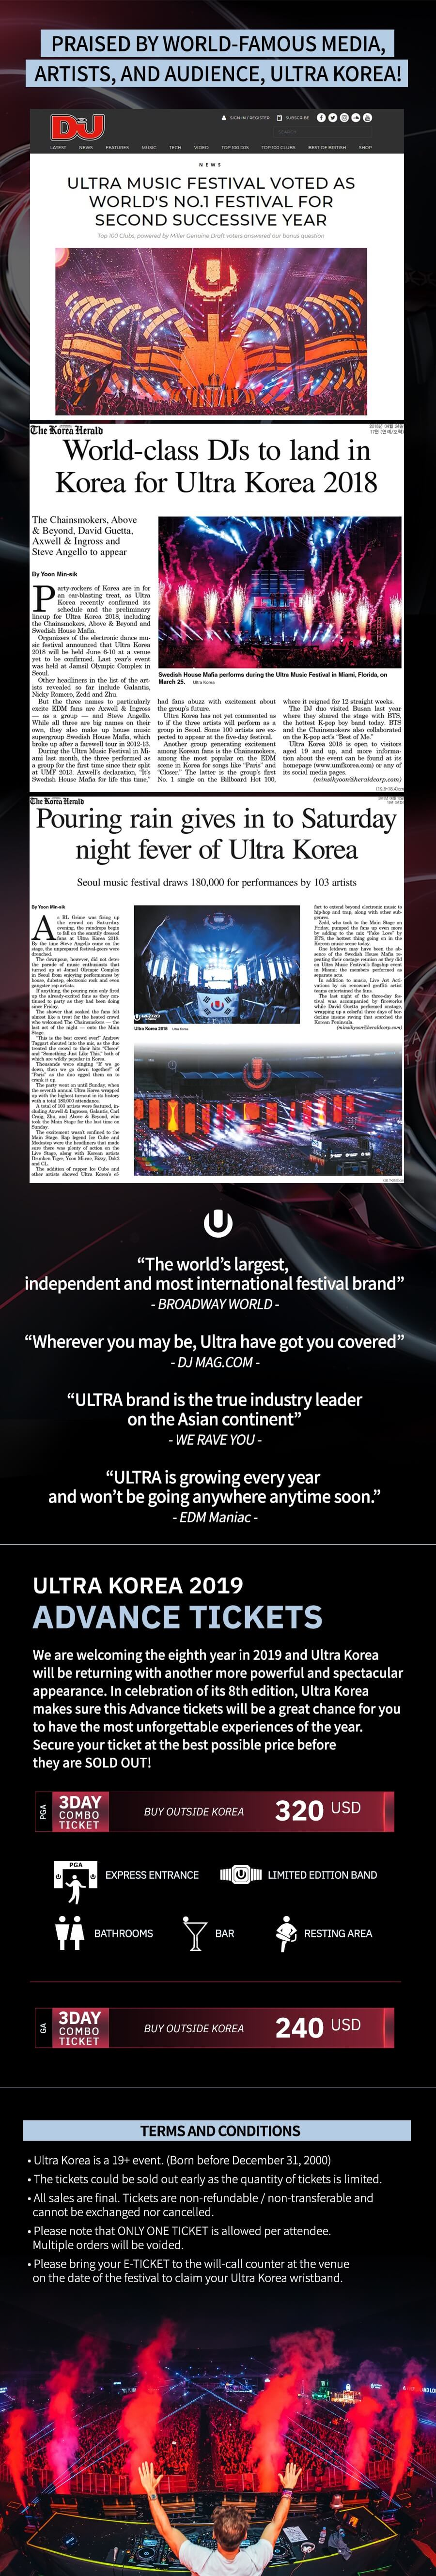 Ultra Korea 2019 AD Poster 2nd 003